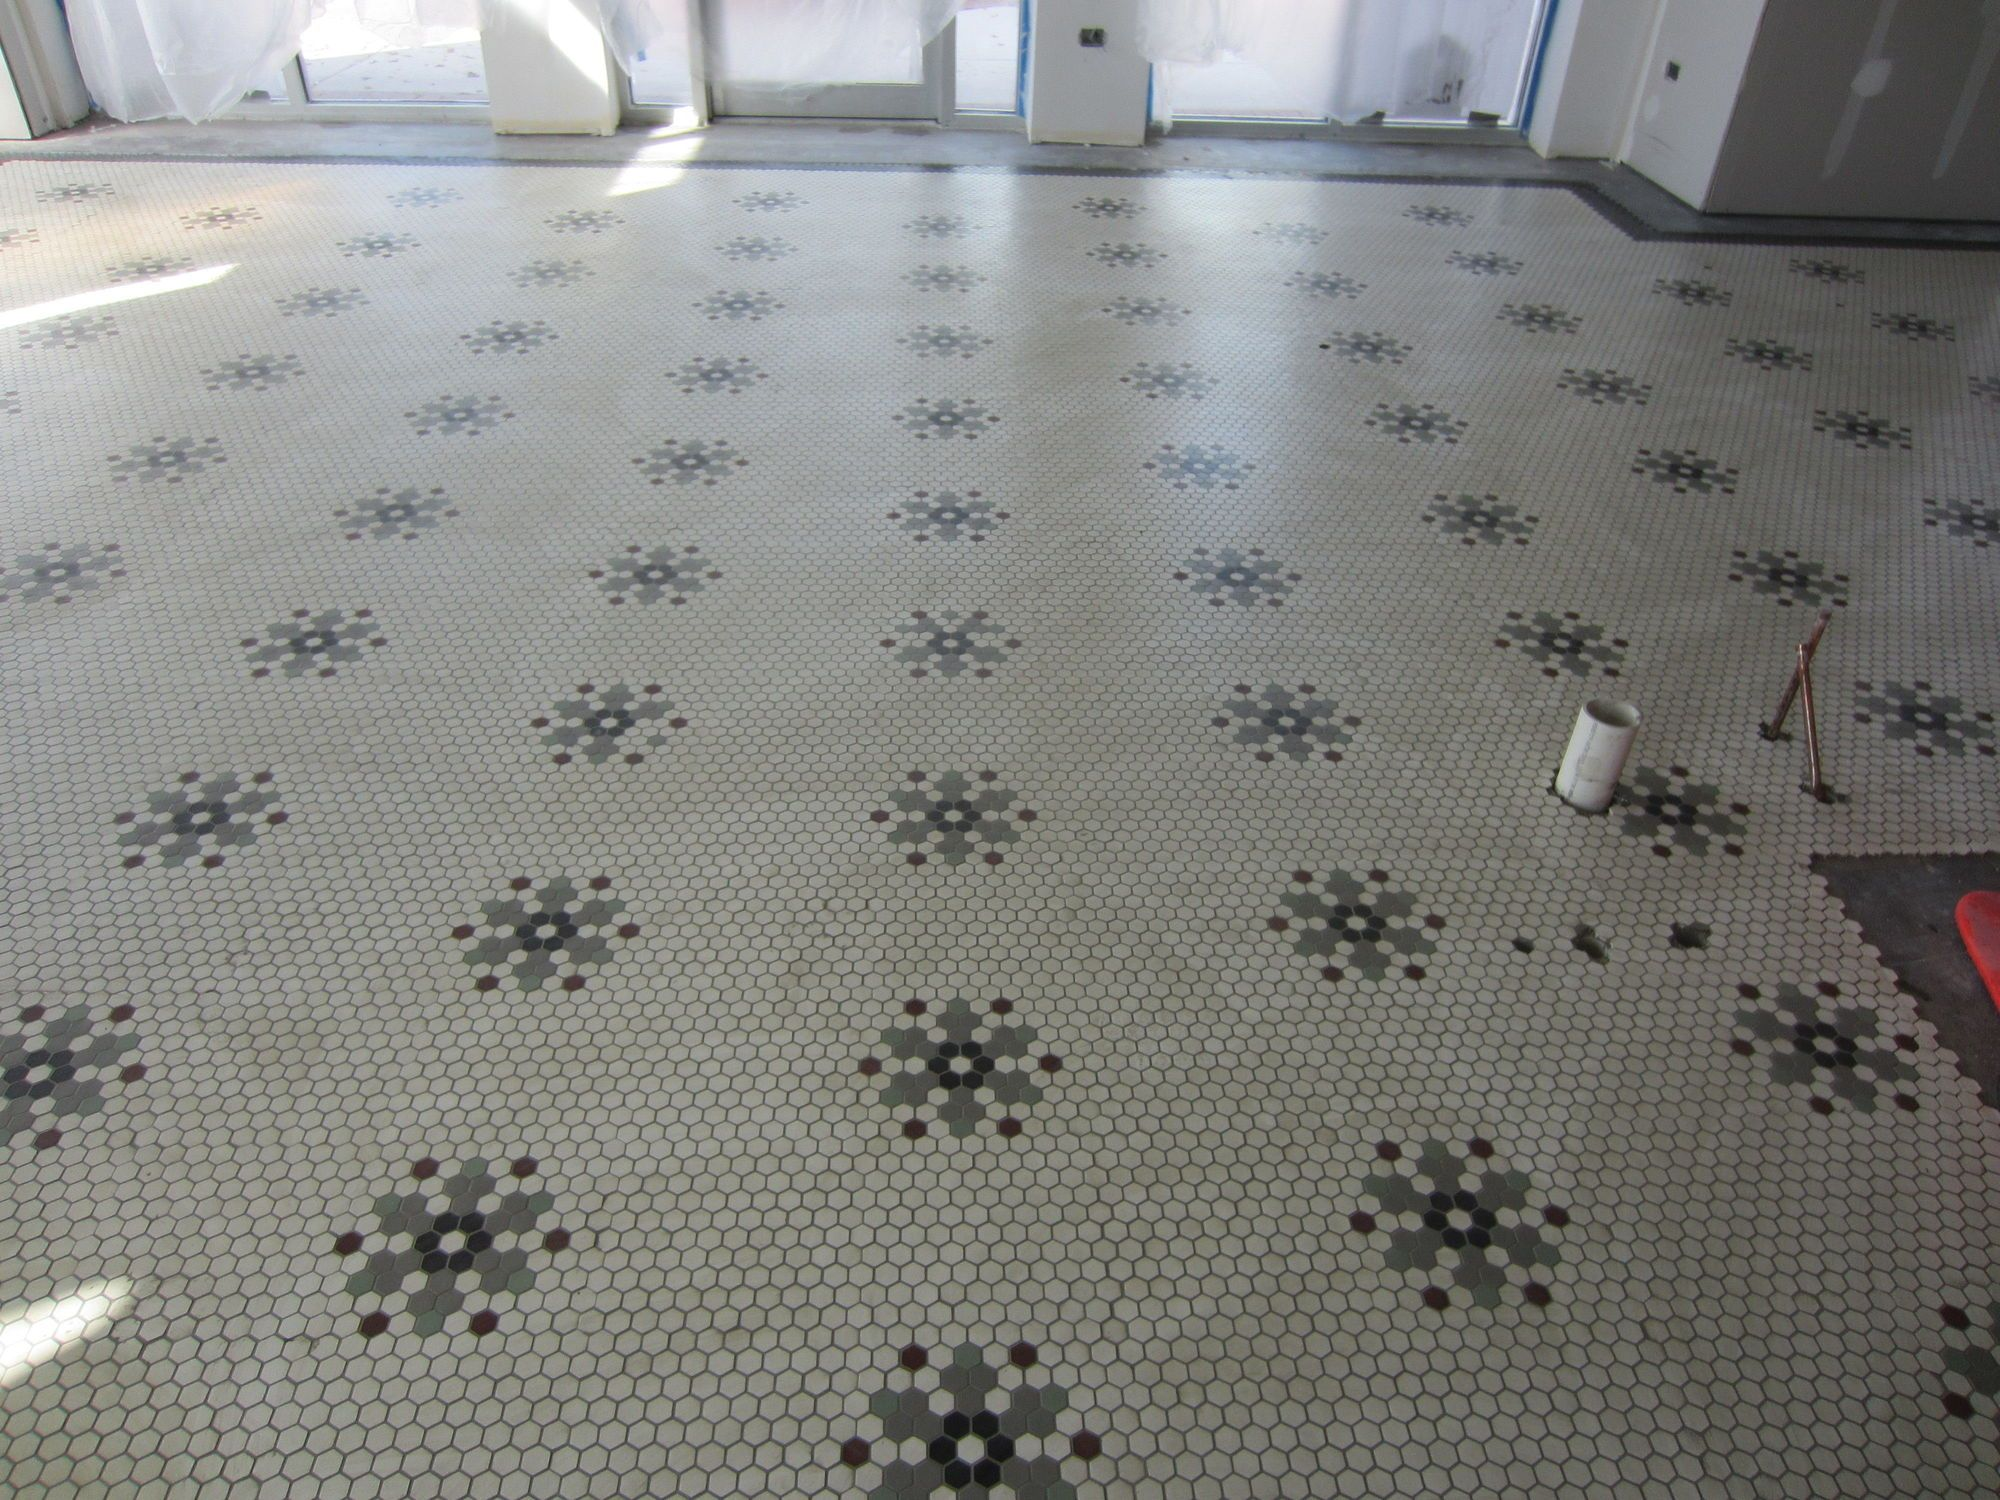 Hex tile floor pattern google search bathrooms pinterest hex tile floor pattern google search dailygadgetfo Choice Image